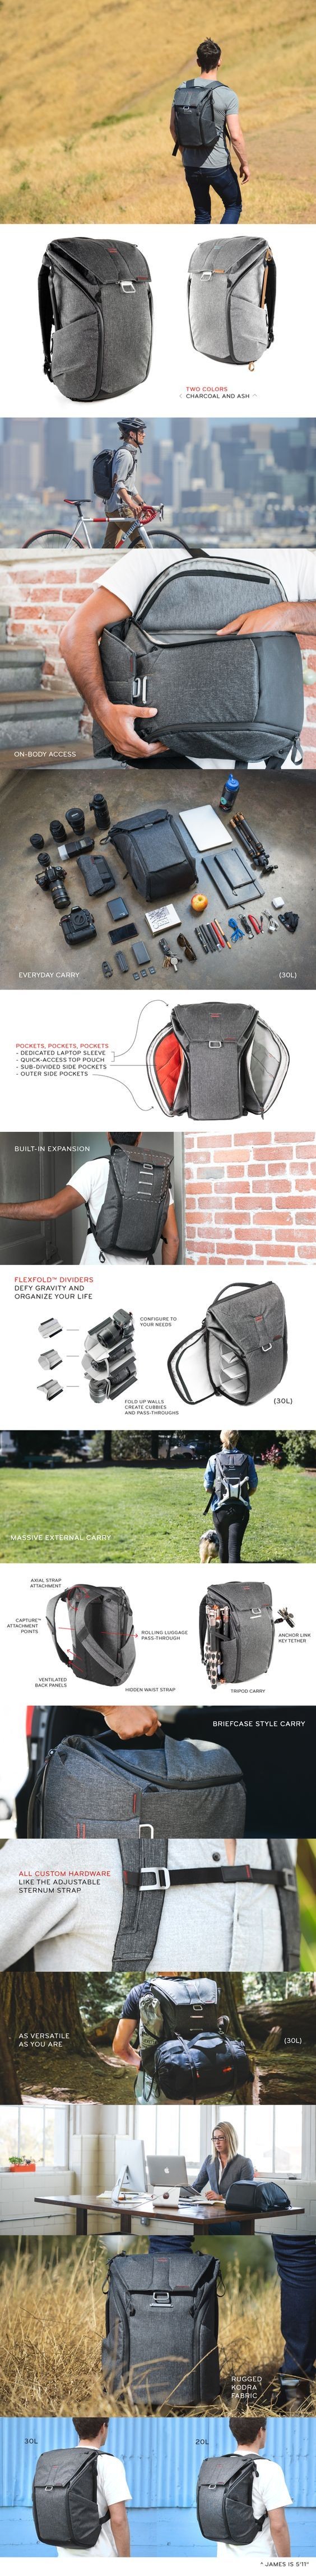 The world's best everyday bags. Become a backer of Kickstarter's most funded active campaign.: